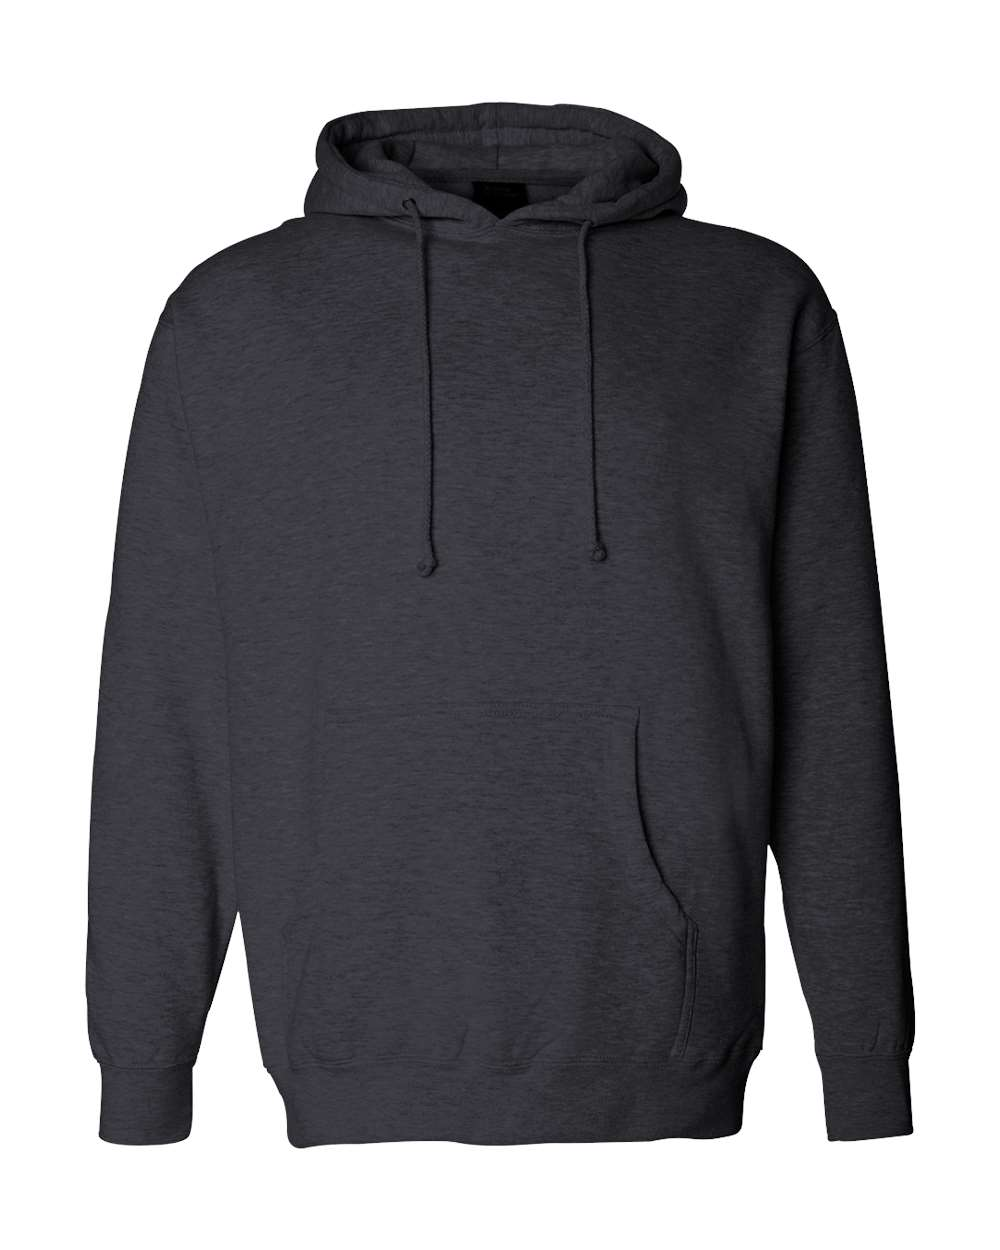 Independent-Trading-Co-Mens-Hooded-Pullover-Sweatshirt-IND4000-up-to-3XL miniature 27